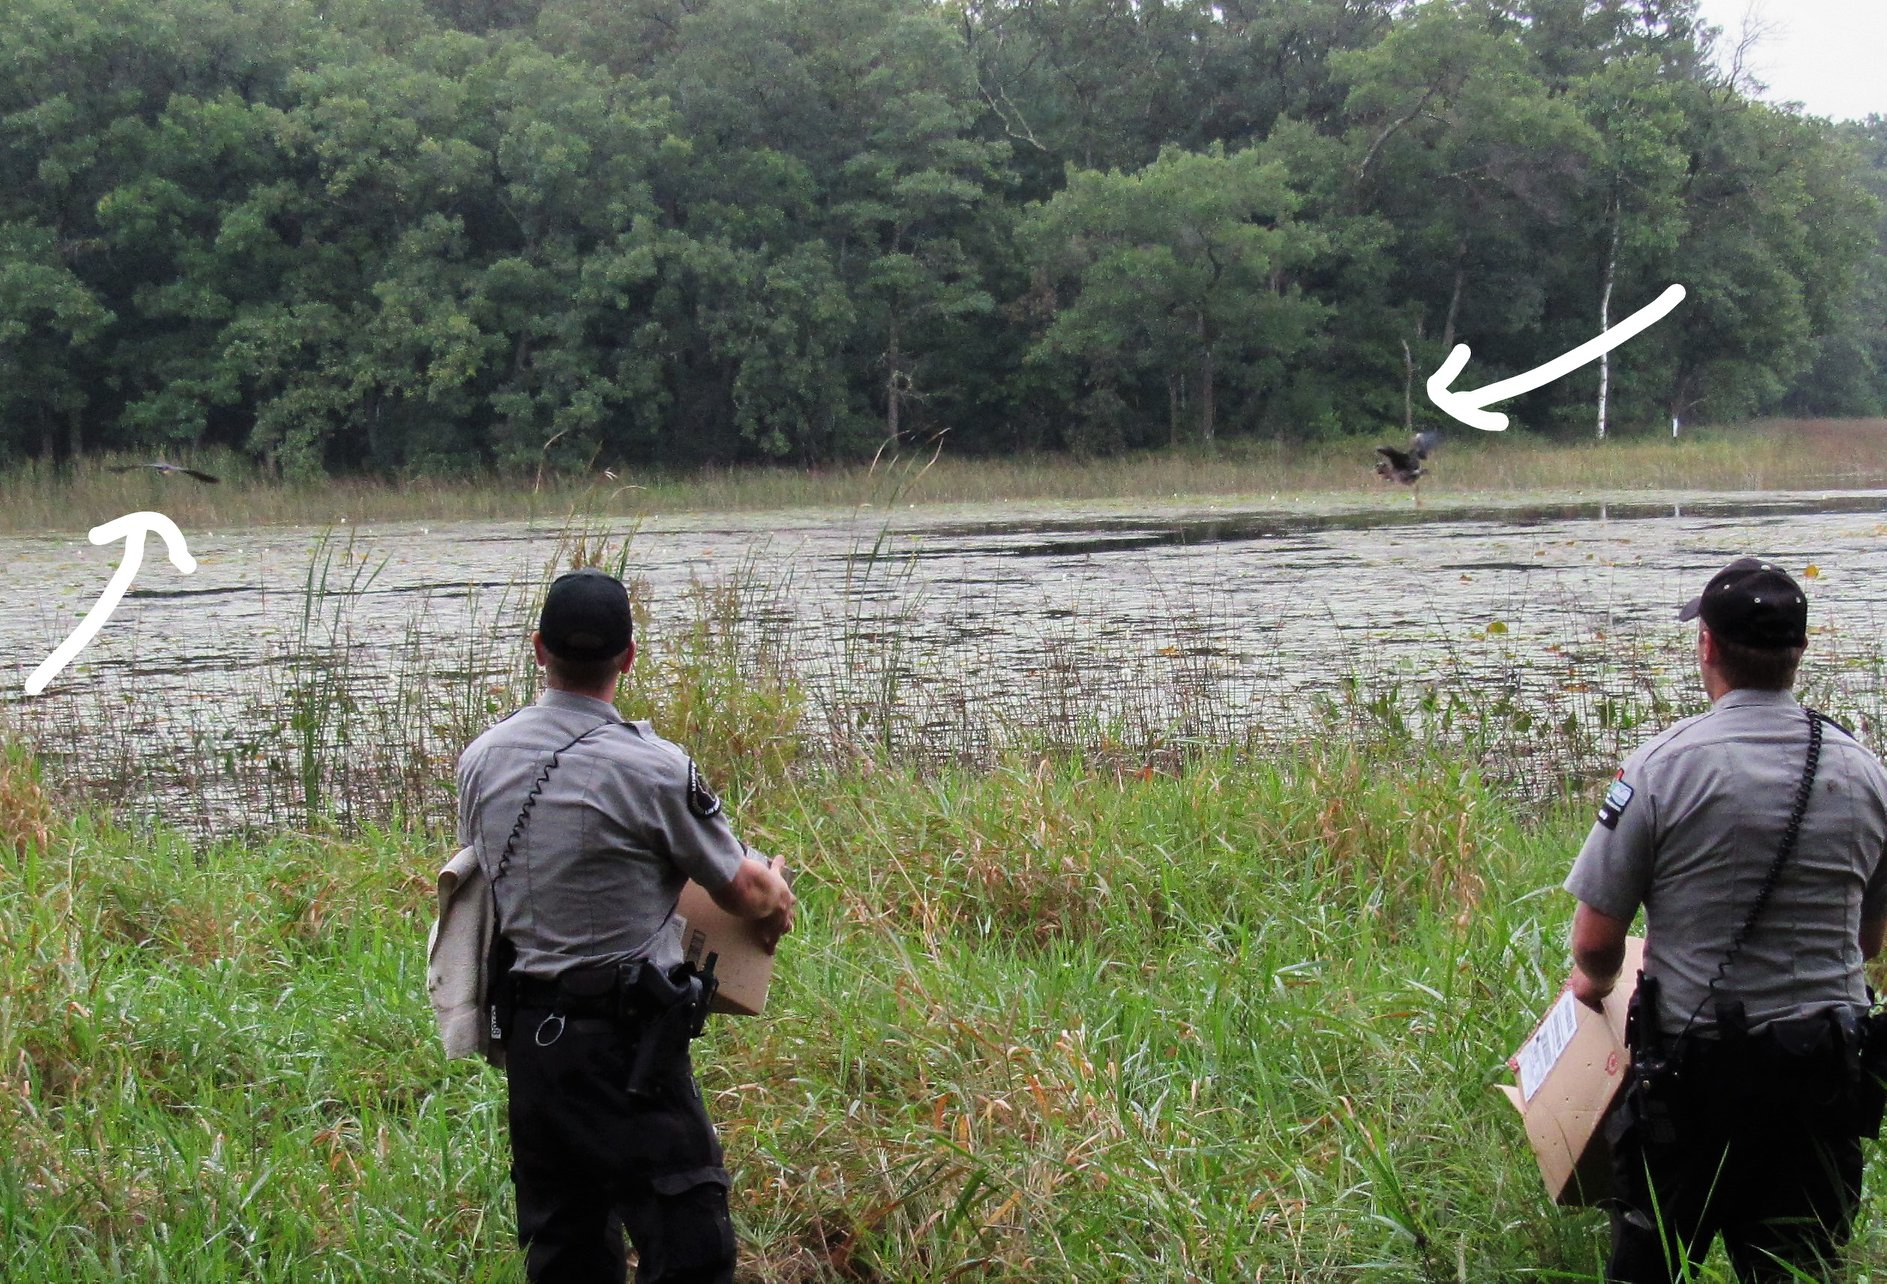 Wardens Ben Mott and Kyle Ziembo release rehabilitated Little green herons into perfect habitat. The arrows point to the herons as they wing their way to freedom. They were so excited to be free!